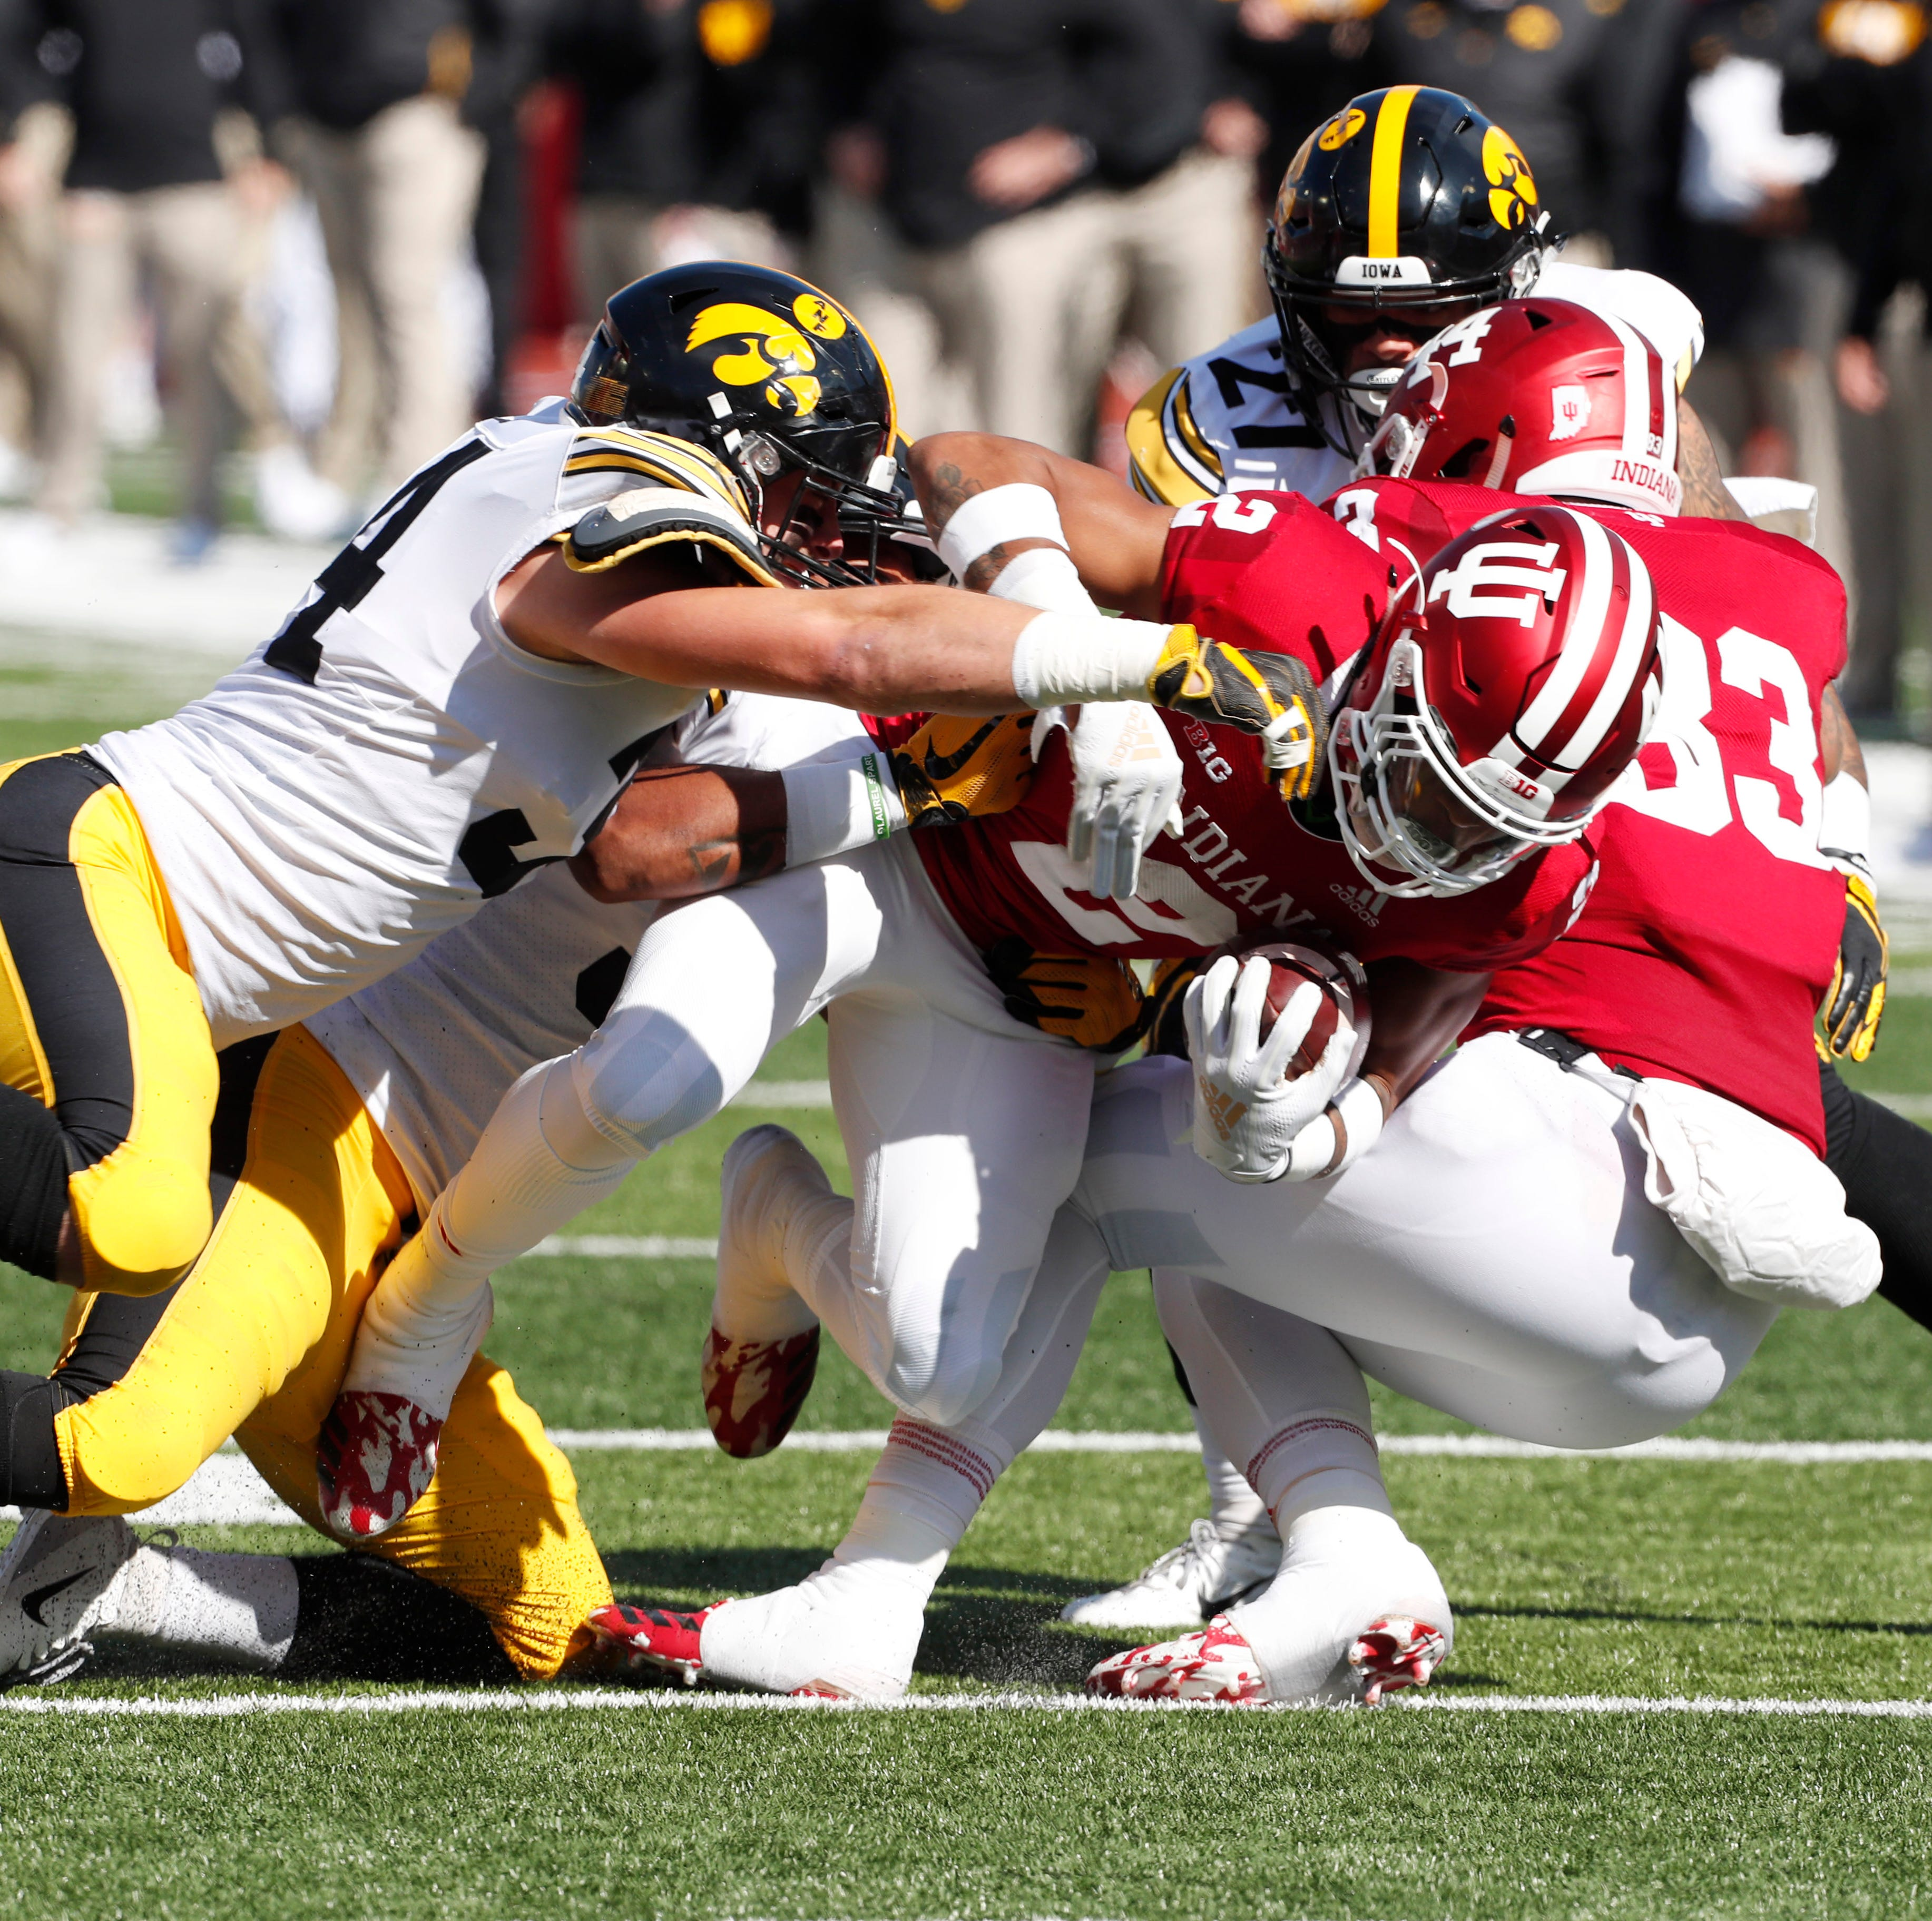 Amani Hooker and a new-look Iowa defense put the clamps on Indiana